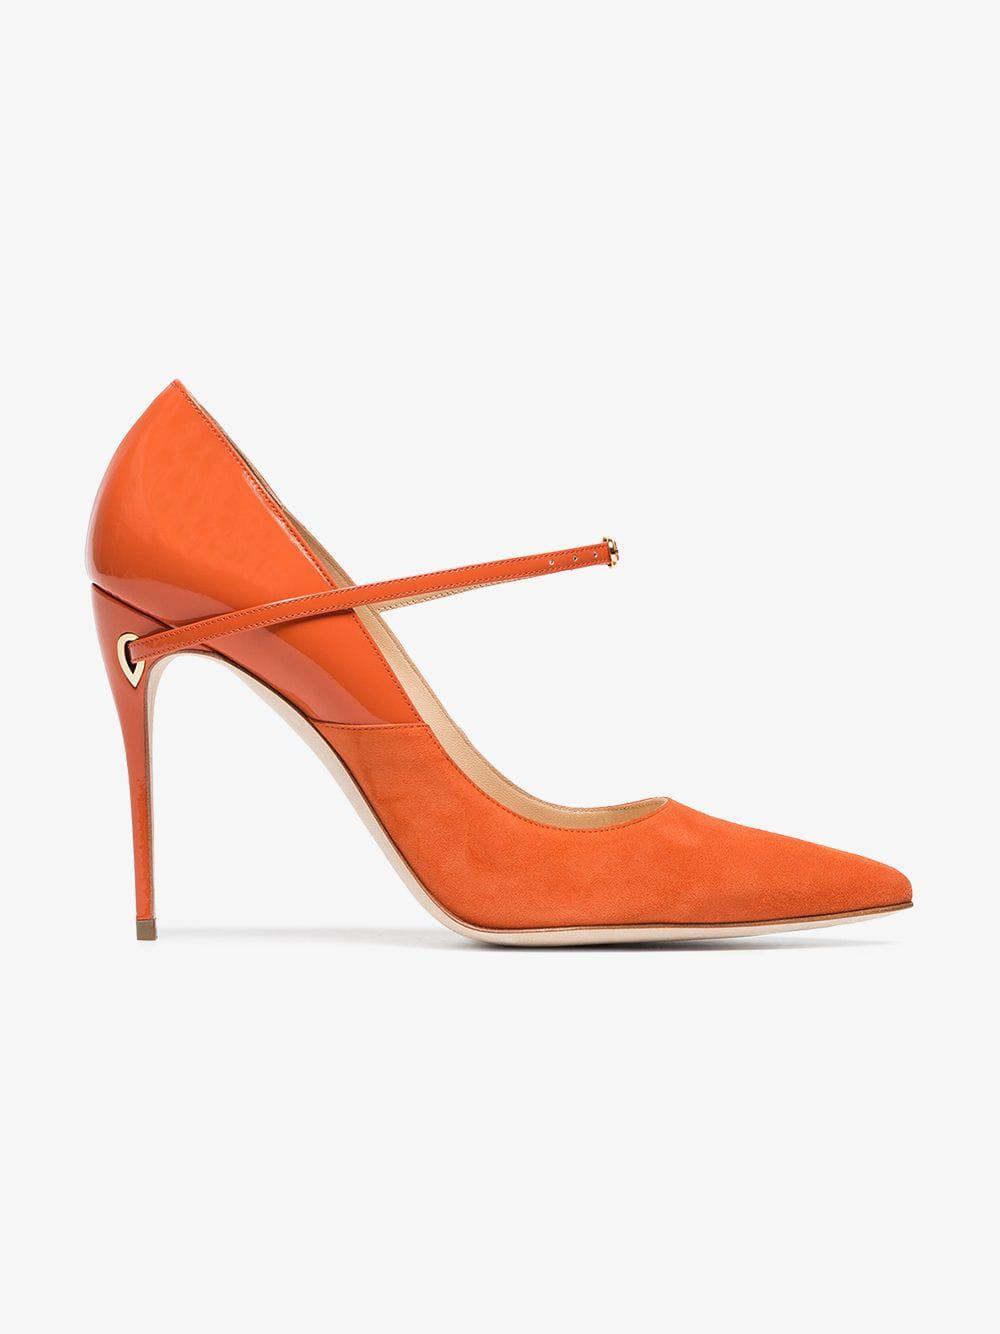 8c847cc3a07 JENNIFER CHAMANDI - Orange Lorenzo 105 Leather Suede Pumps - Lyst. View  fullscreen